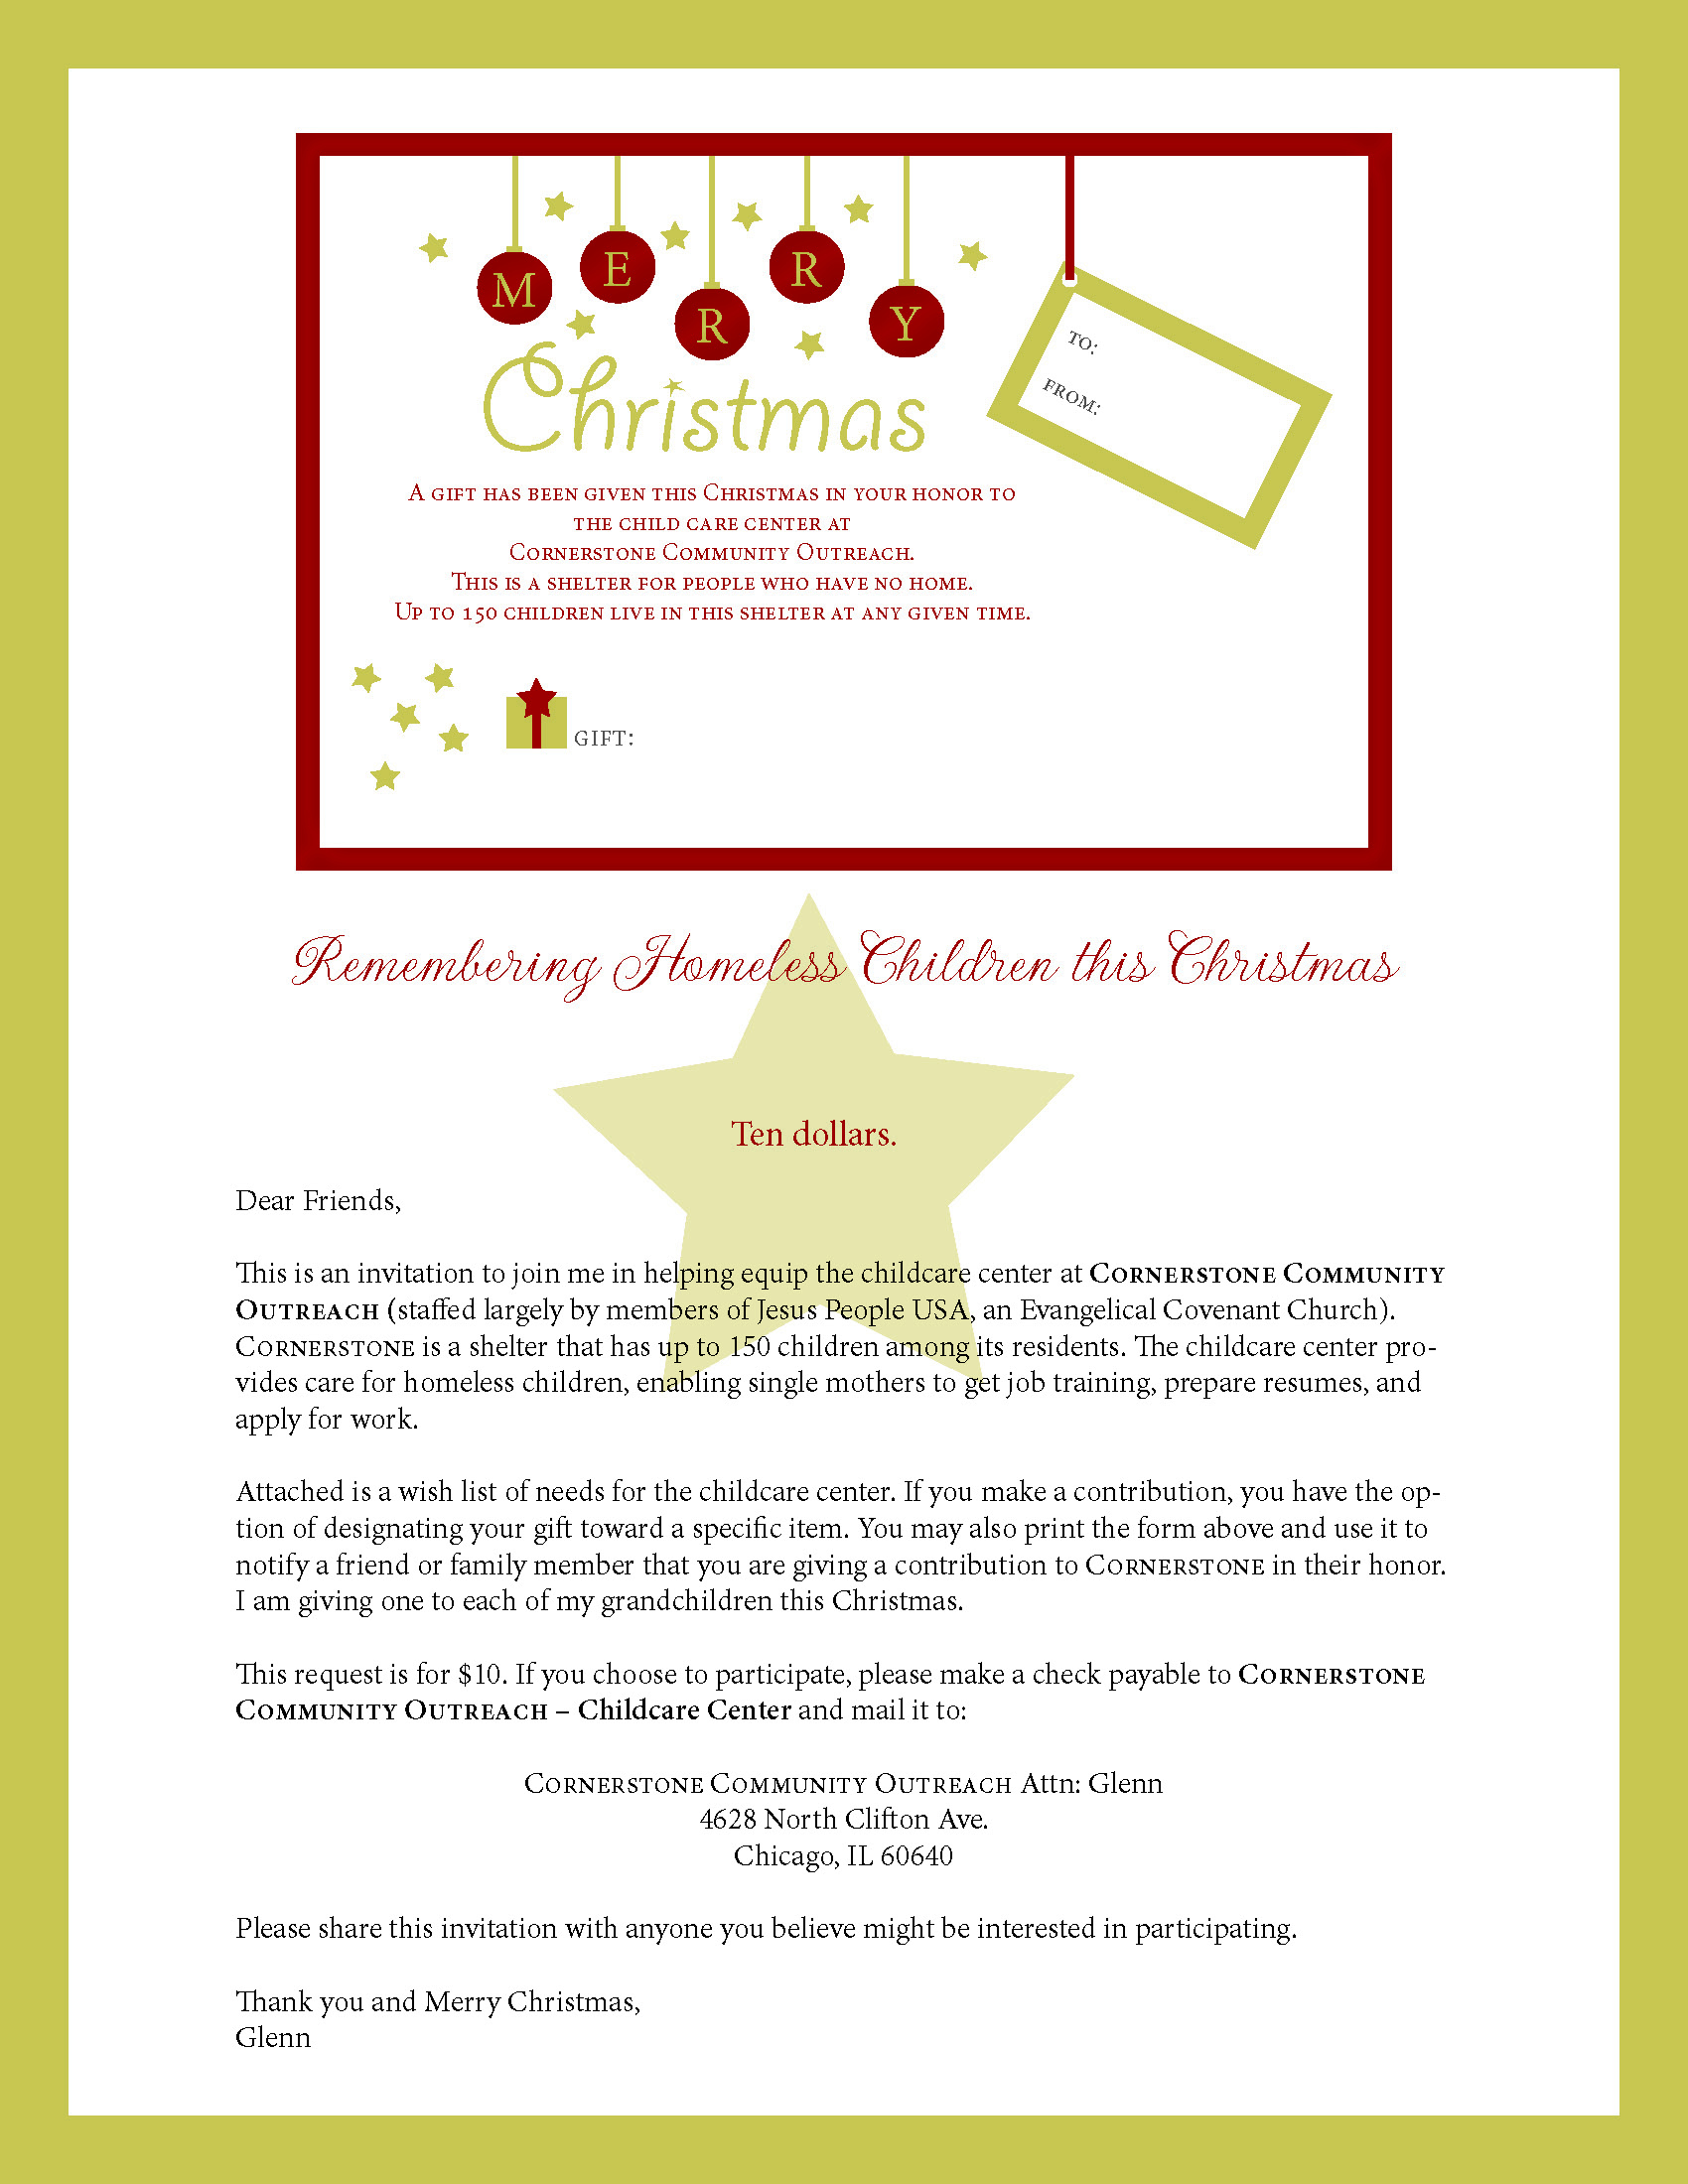 Christmas Donation Letter Template - Thank You Letter for Christmas Donation Letter format